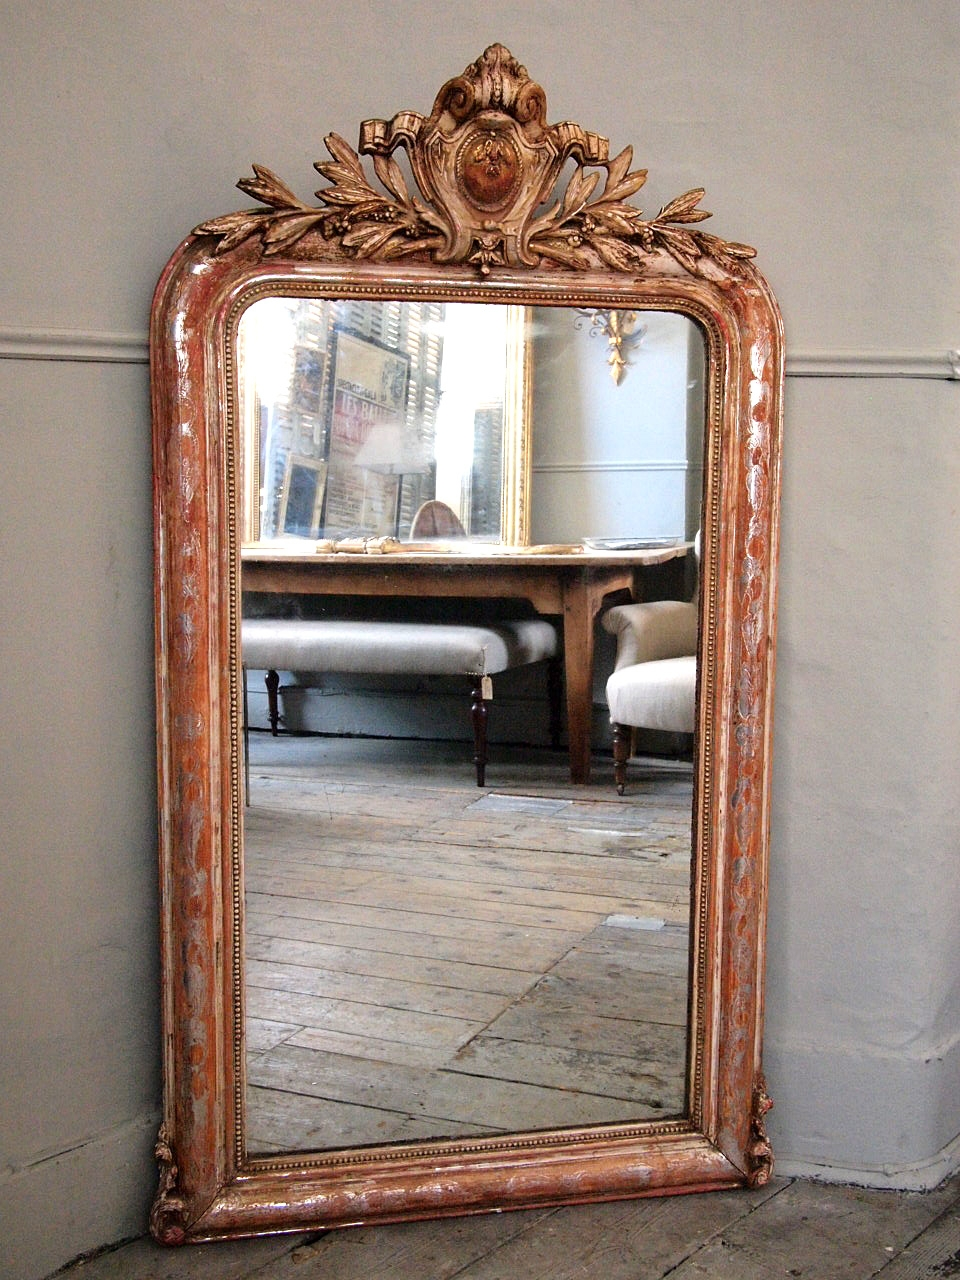 French Antique Mirror Puckhaber Decorative Antiques Intended For Old French Mirrors (Image 9 of 15)